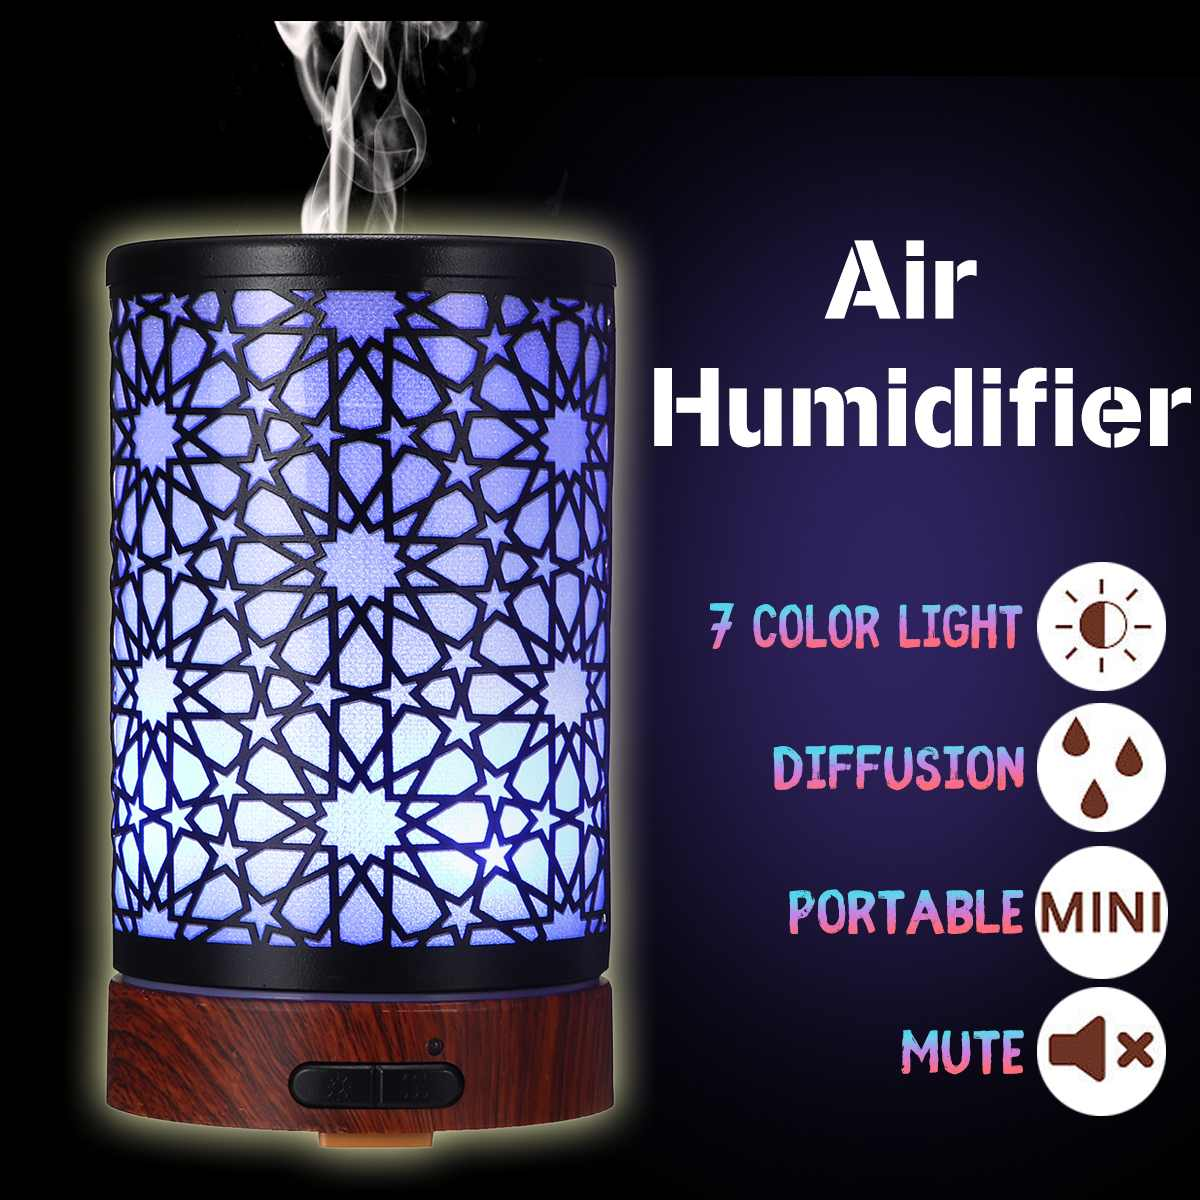 100ml Essential Oil Humidifier Air Aromatherapy Diffuser Purifier Noiseless Iron Mist Maker Humidificador Intelligent LED Lamp100ml Essential Oil Humidifier Air Aromatherapy Diffuser Purifier Noiseless Iron Mist Maker Humidificador Intelligent LED Lamp